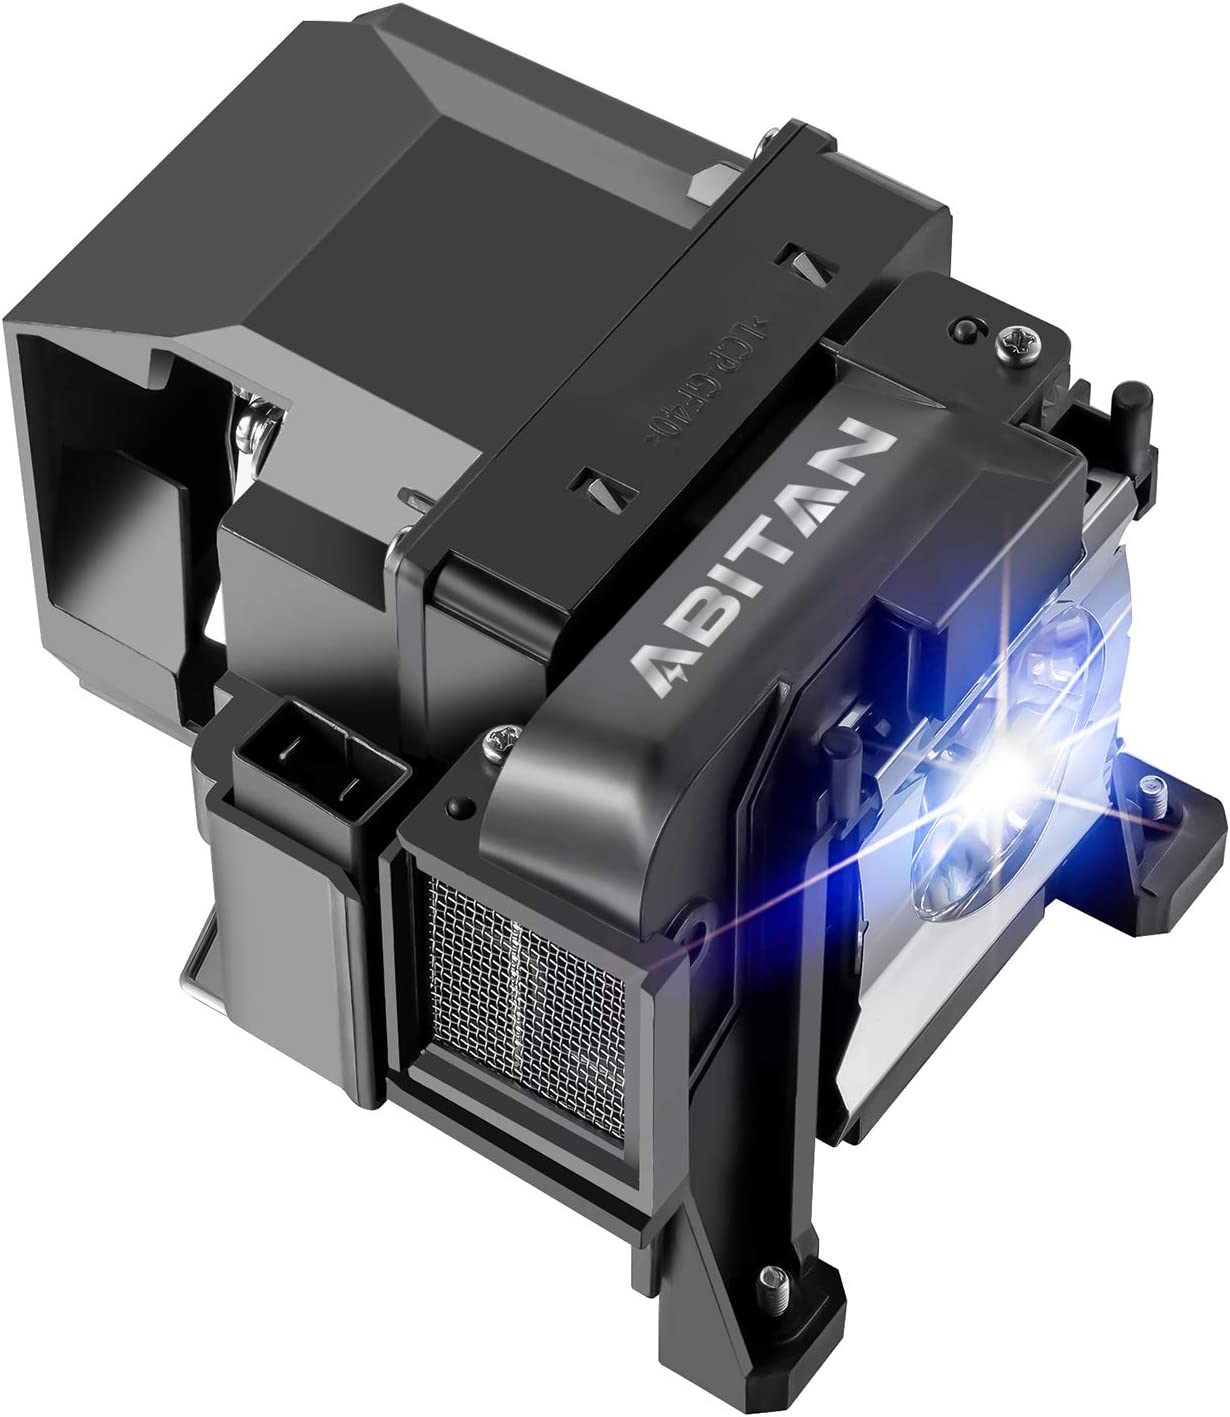 ABITAN V13h010l89 Replacement Projector Lamp for ELPLP89 for Epson powerlite Home Cinema 5040ub 5040ube 5050ub 5050ube 4010 pro Cinema 4050 pro Cinema 6040ub pro Cinema 6050ub Projector